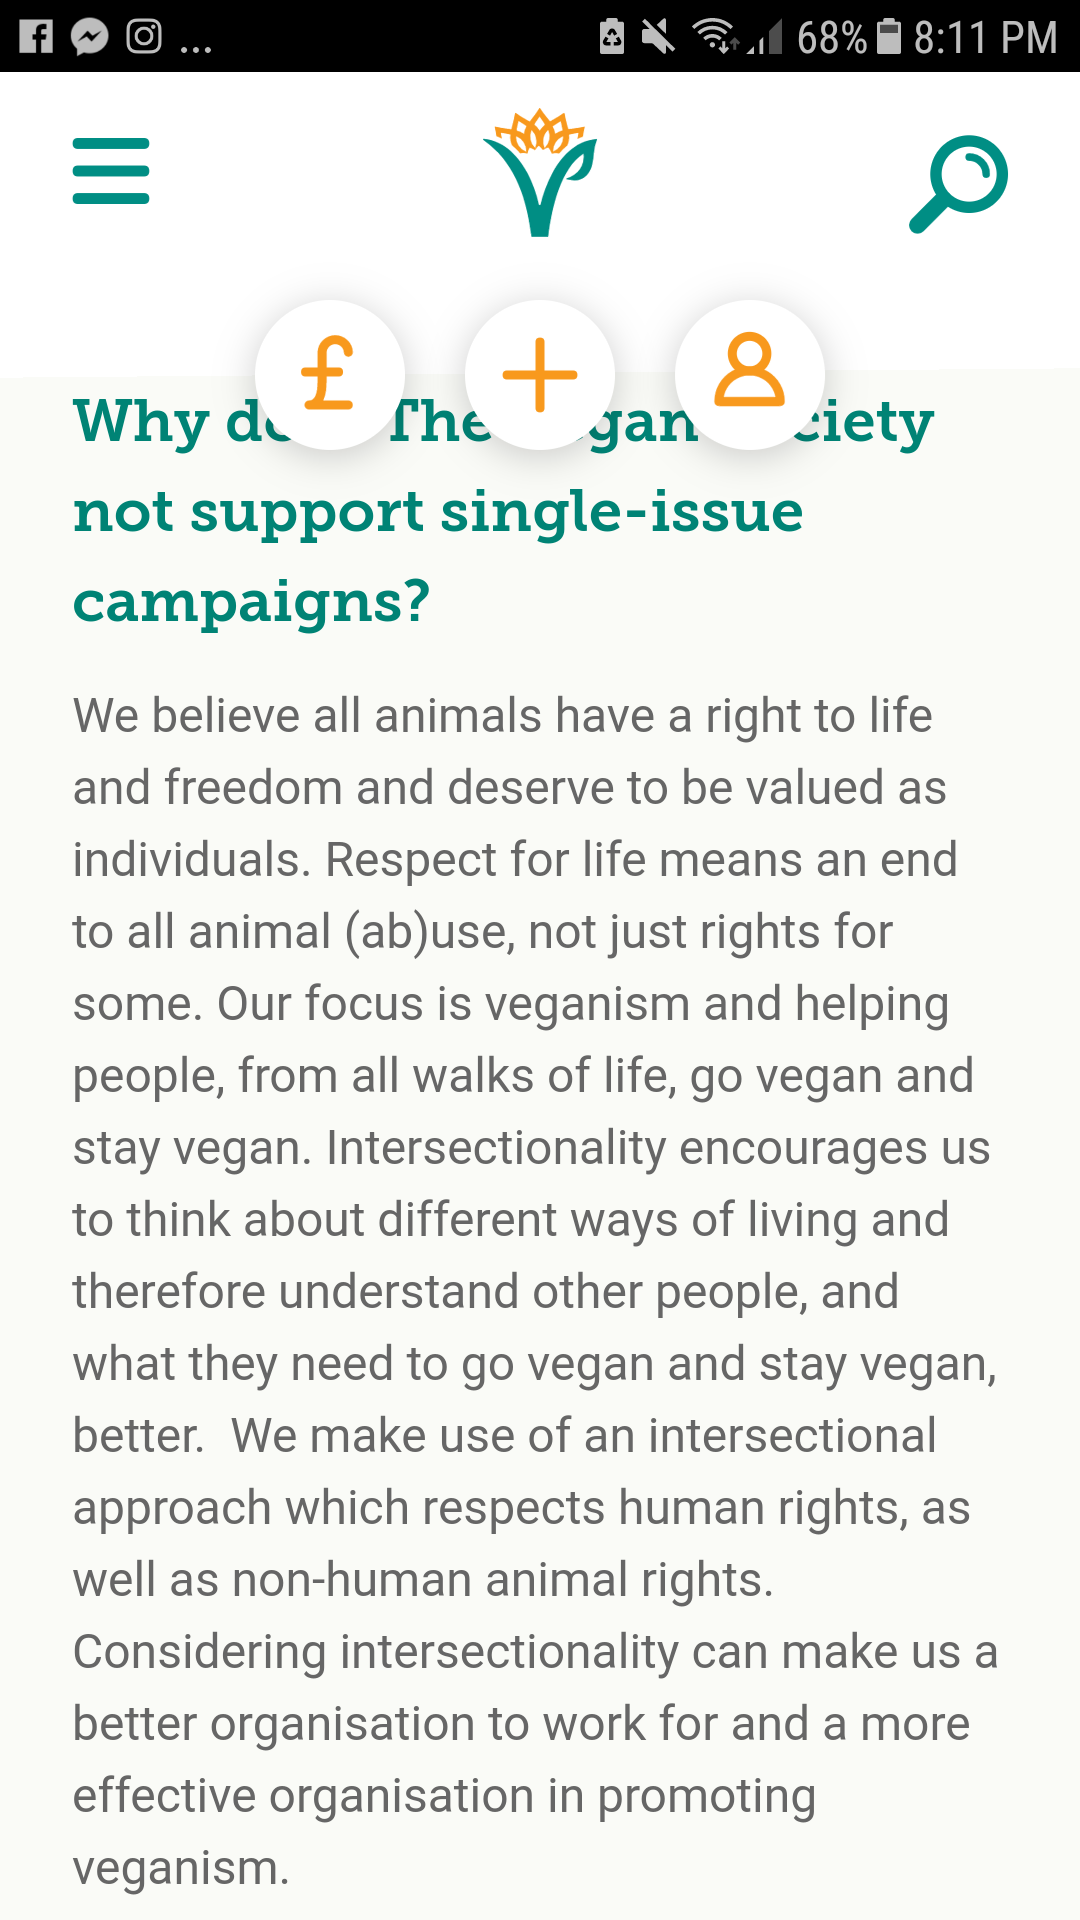 a consistent approach to spreading veganism on behalf of nonhumans —